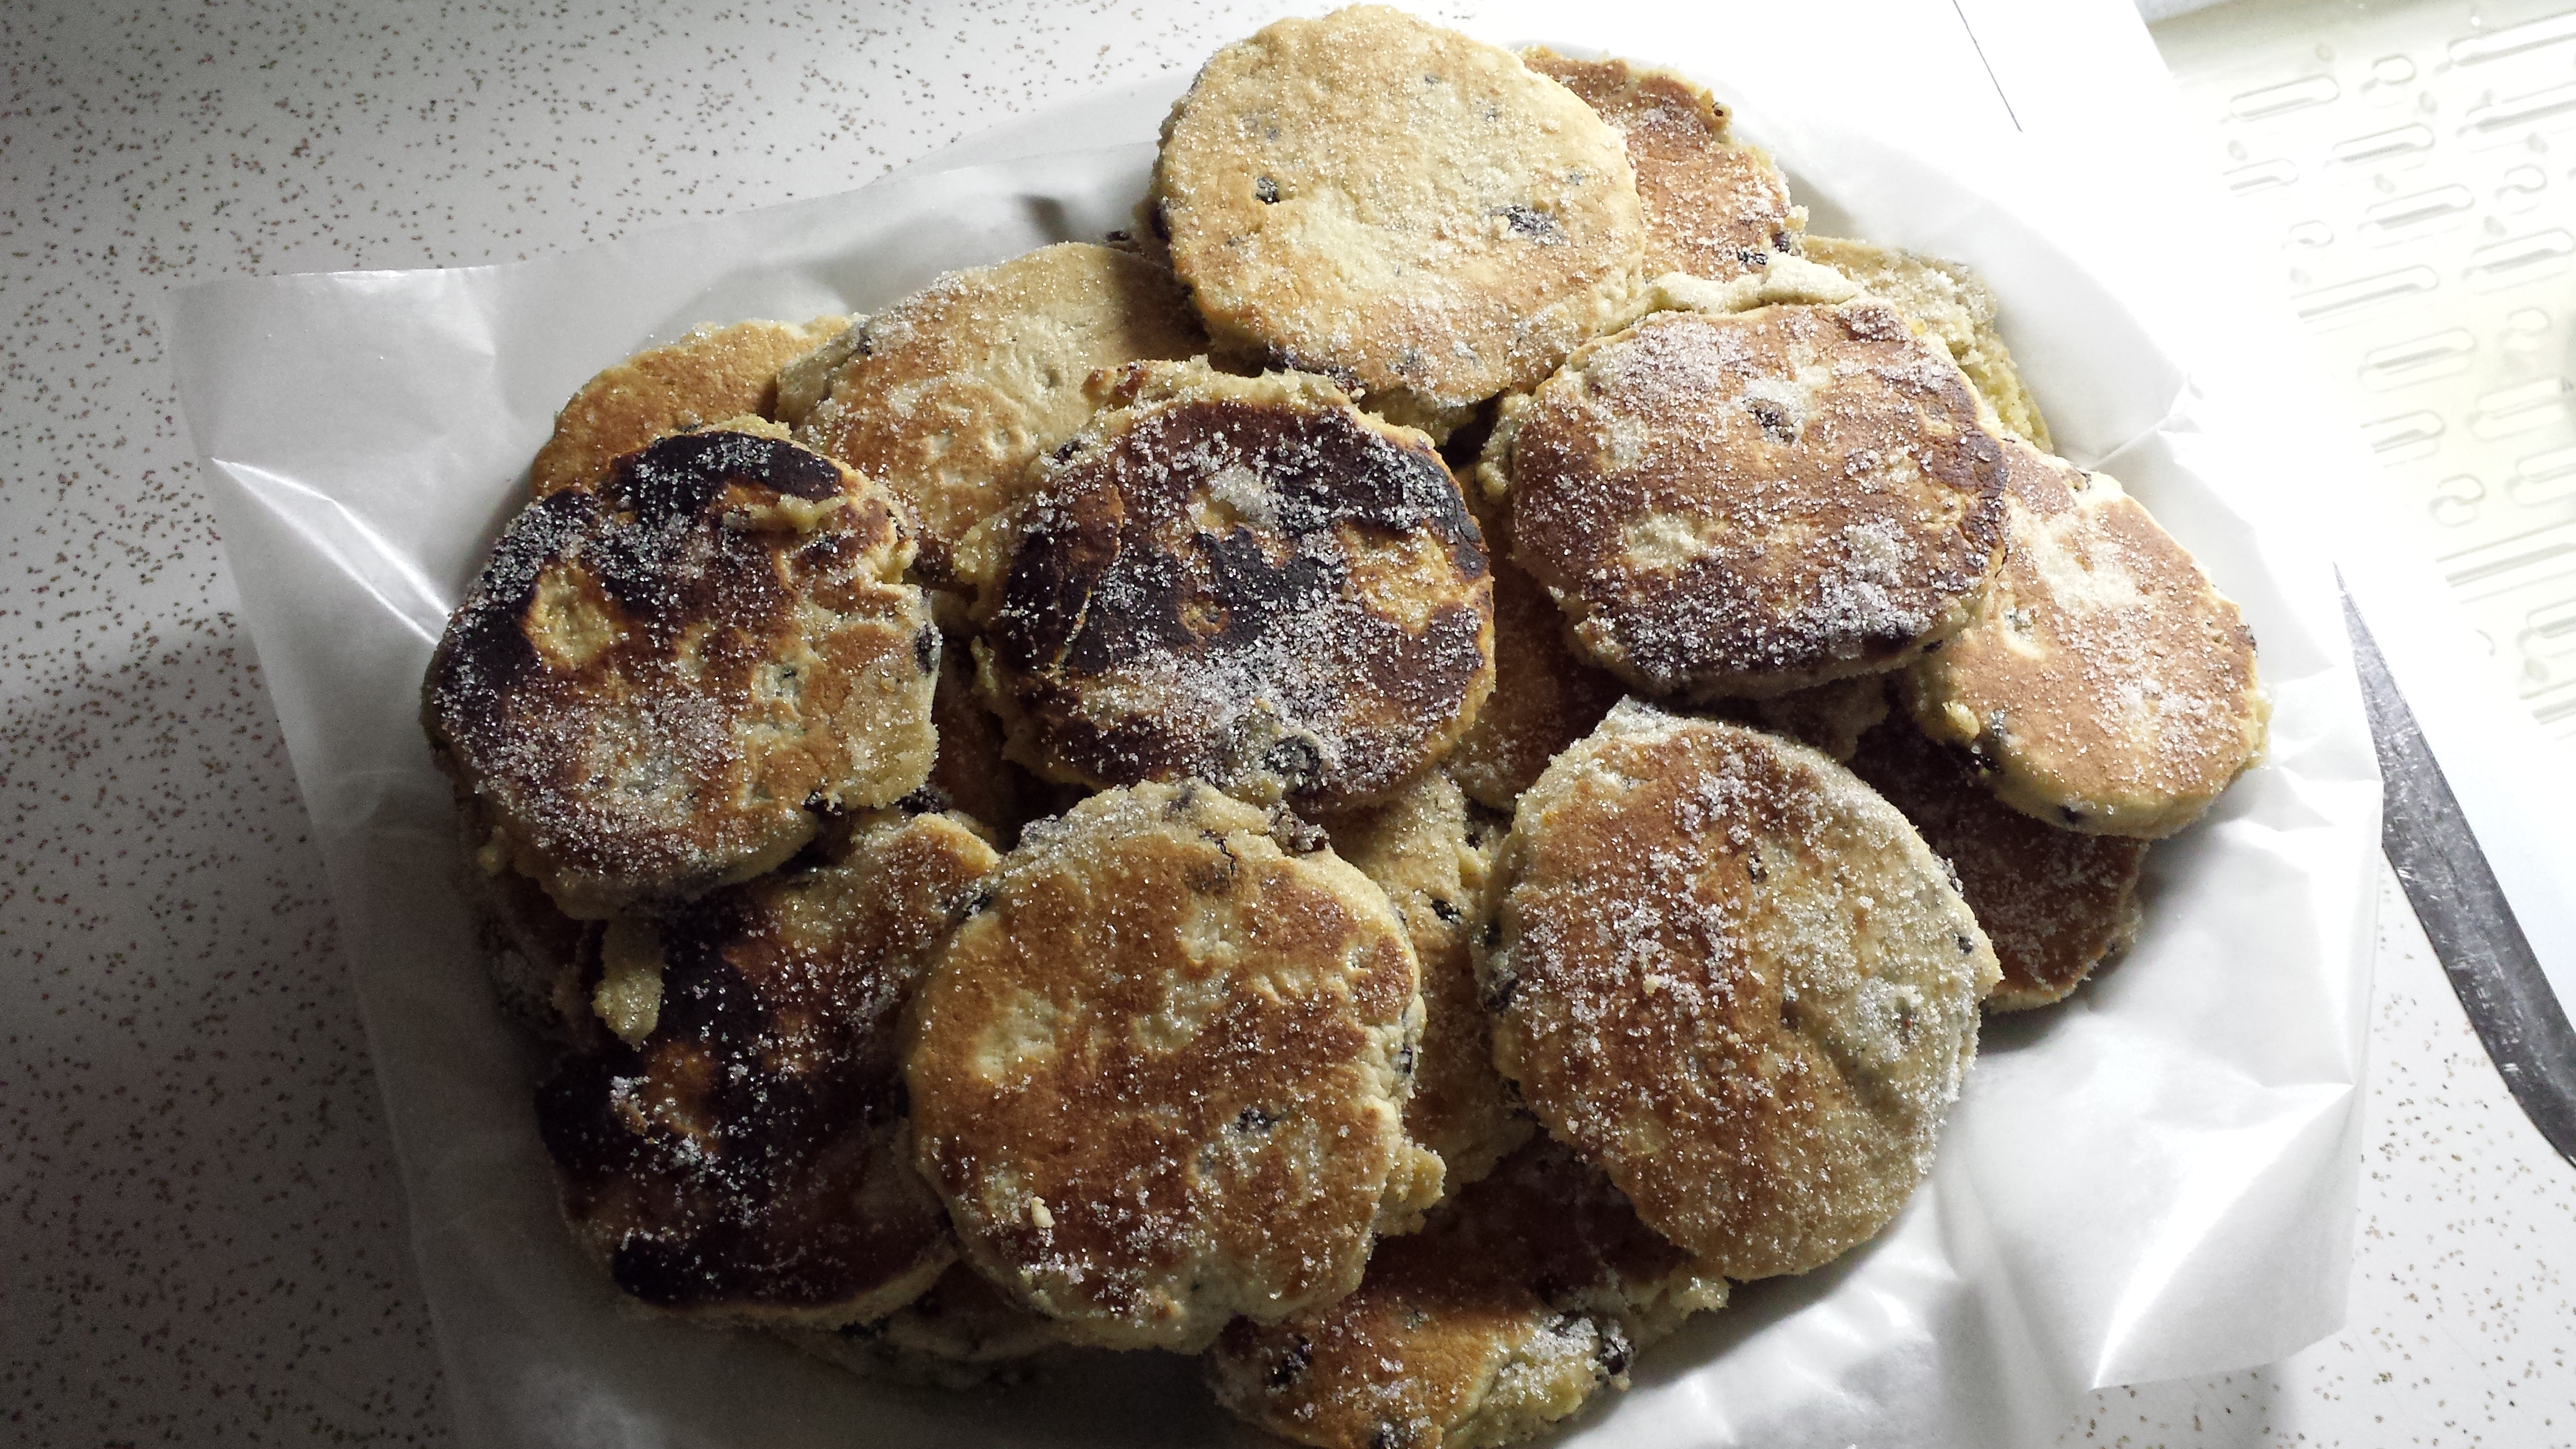 My Welsh cakes